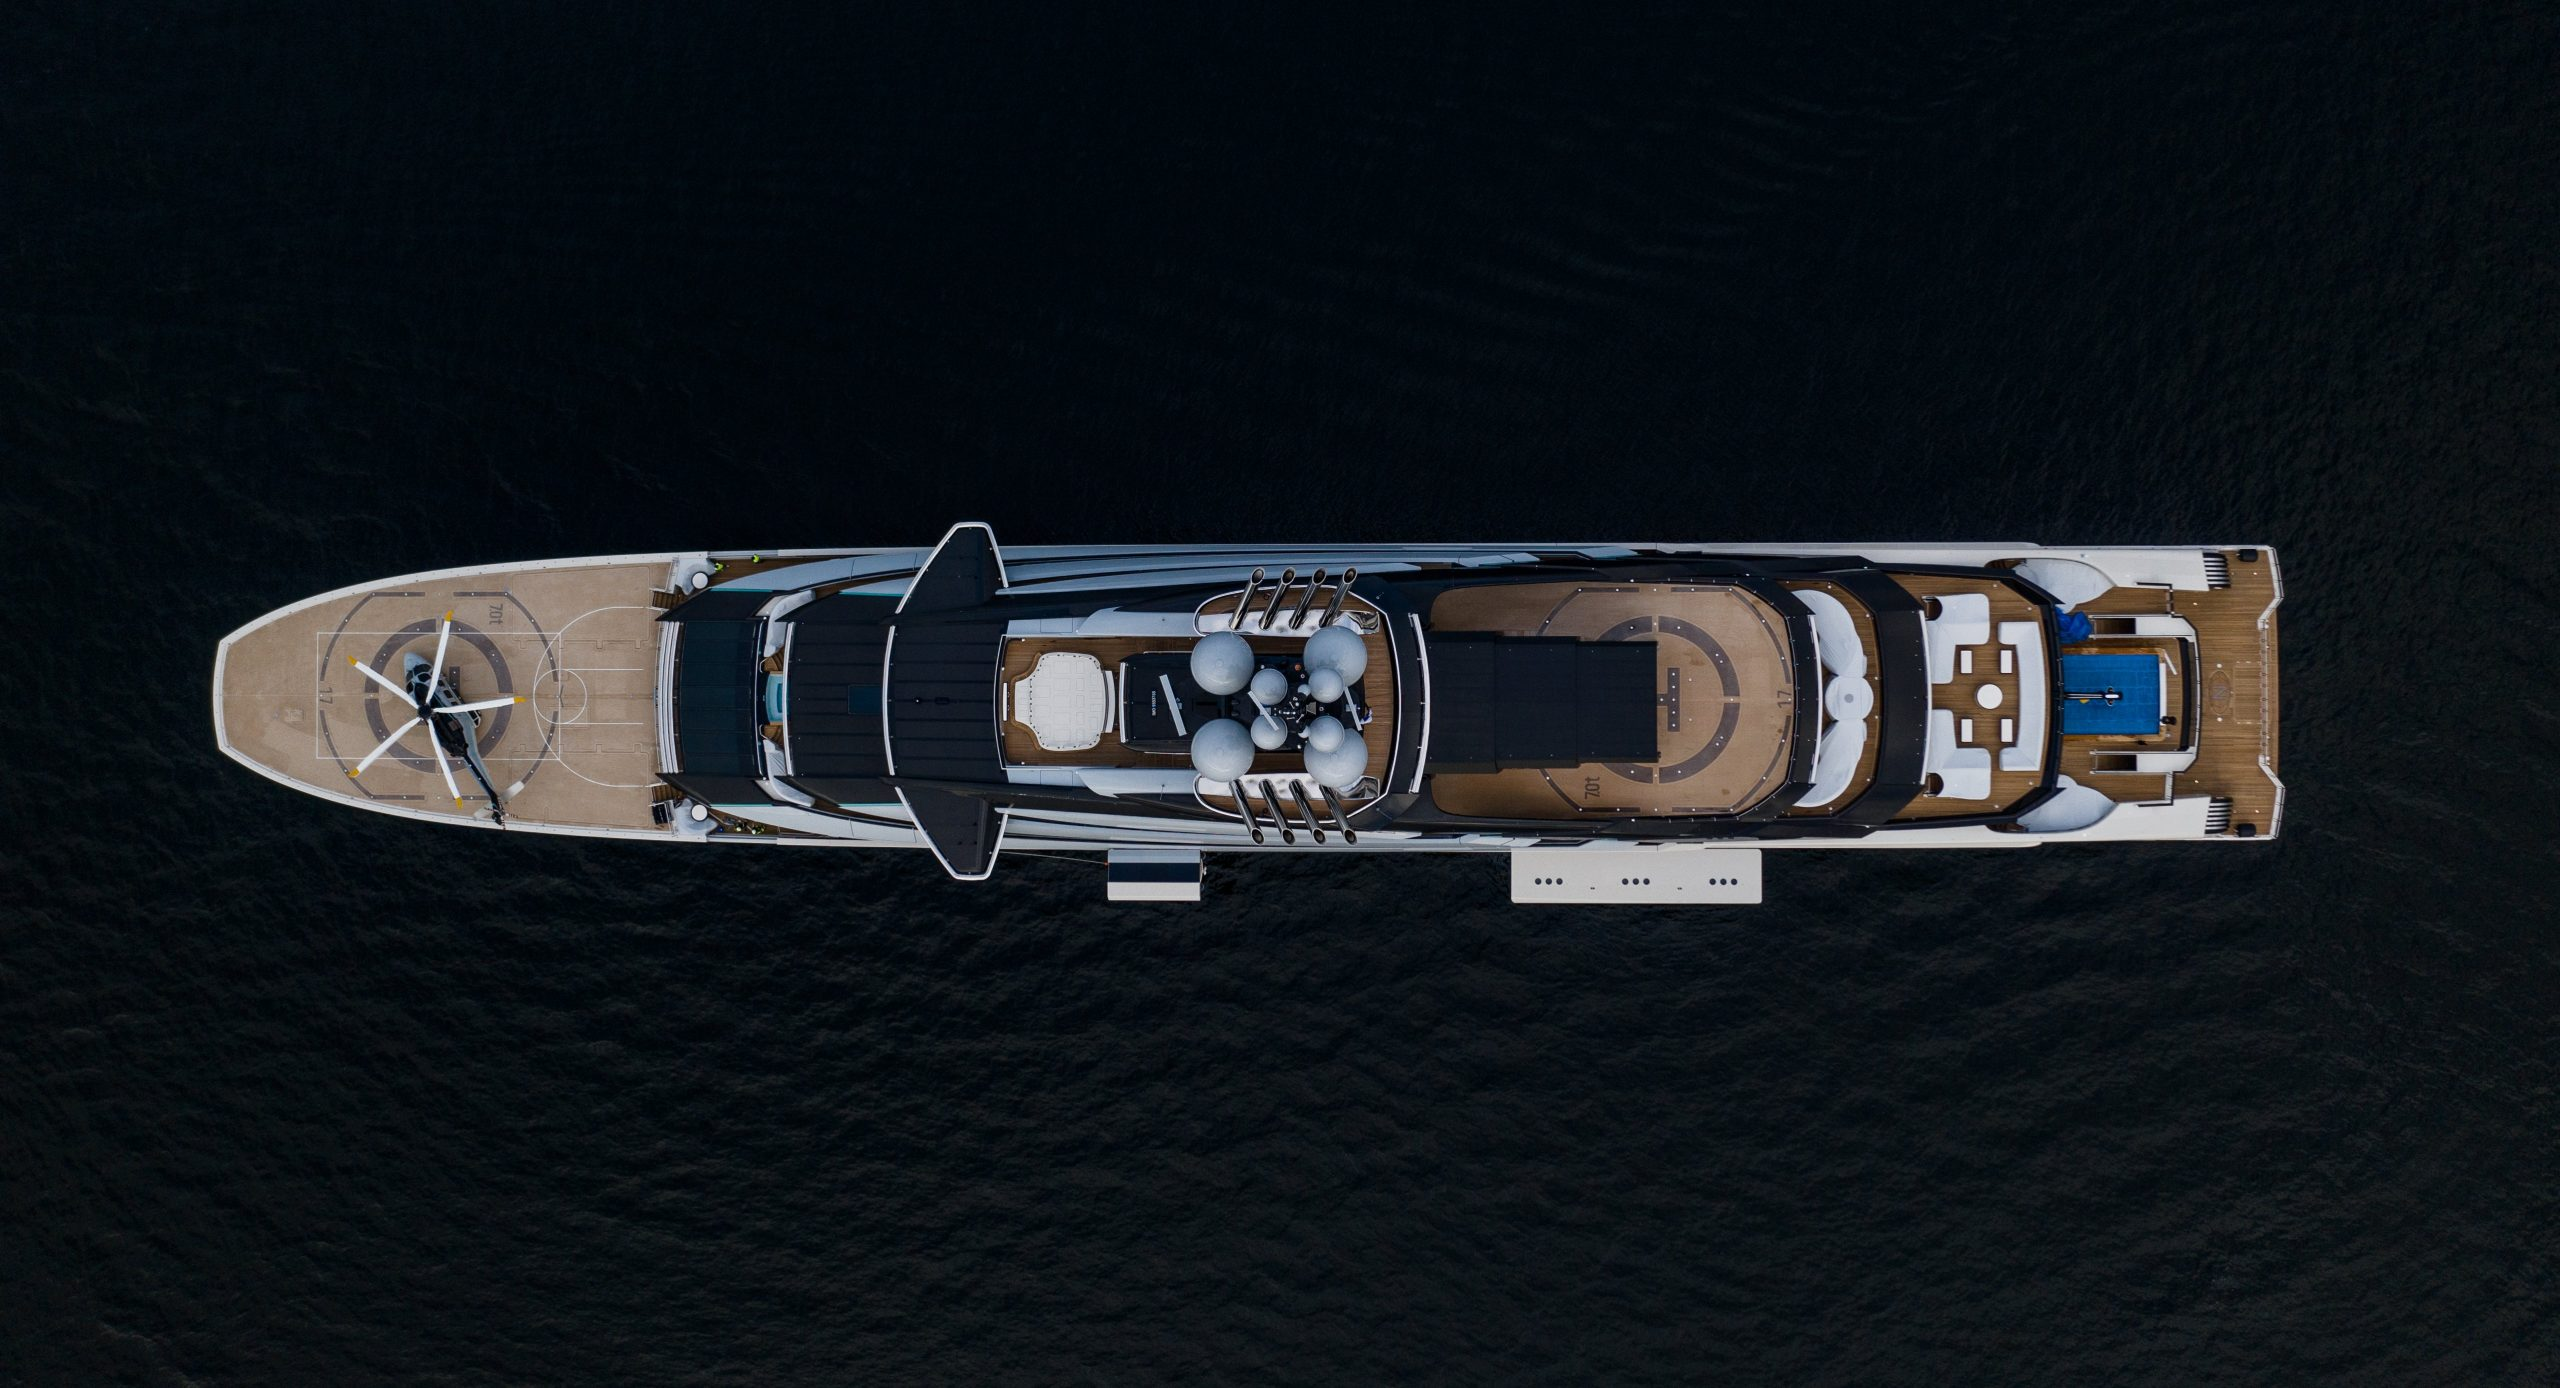 The £450m superyacht Nord, built by the Lurssen boatyard in Bremen, Germany, and owned by Alexei Mordashov